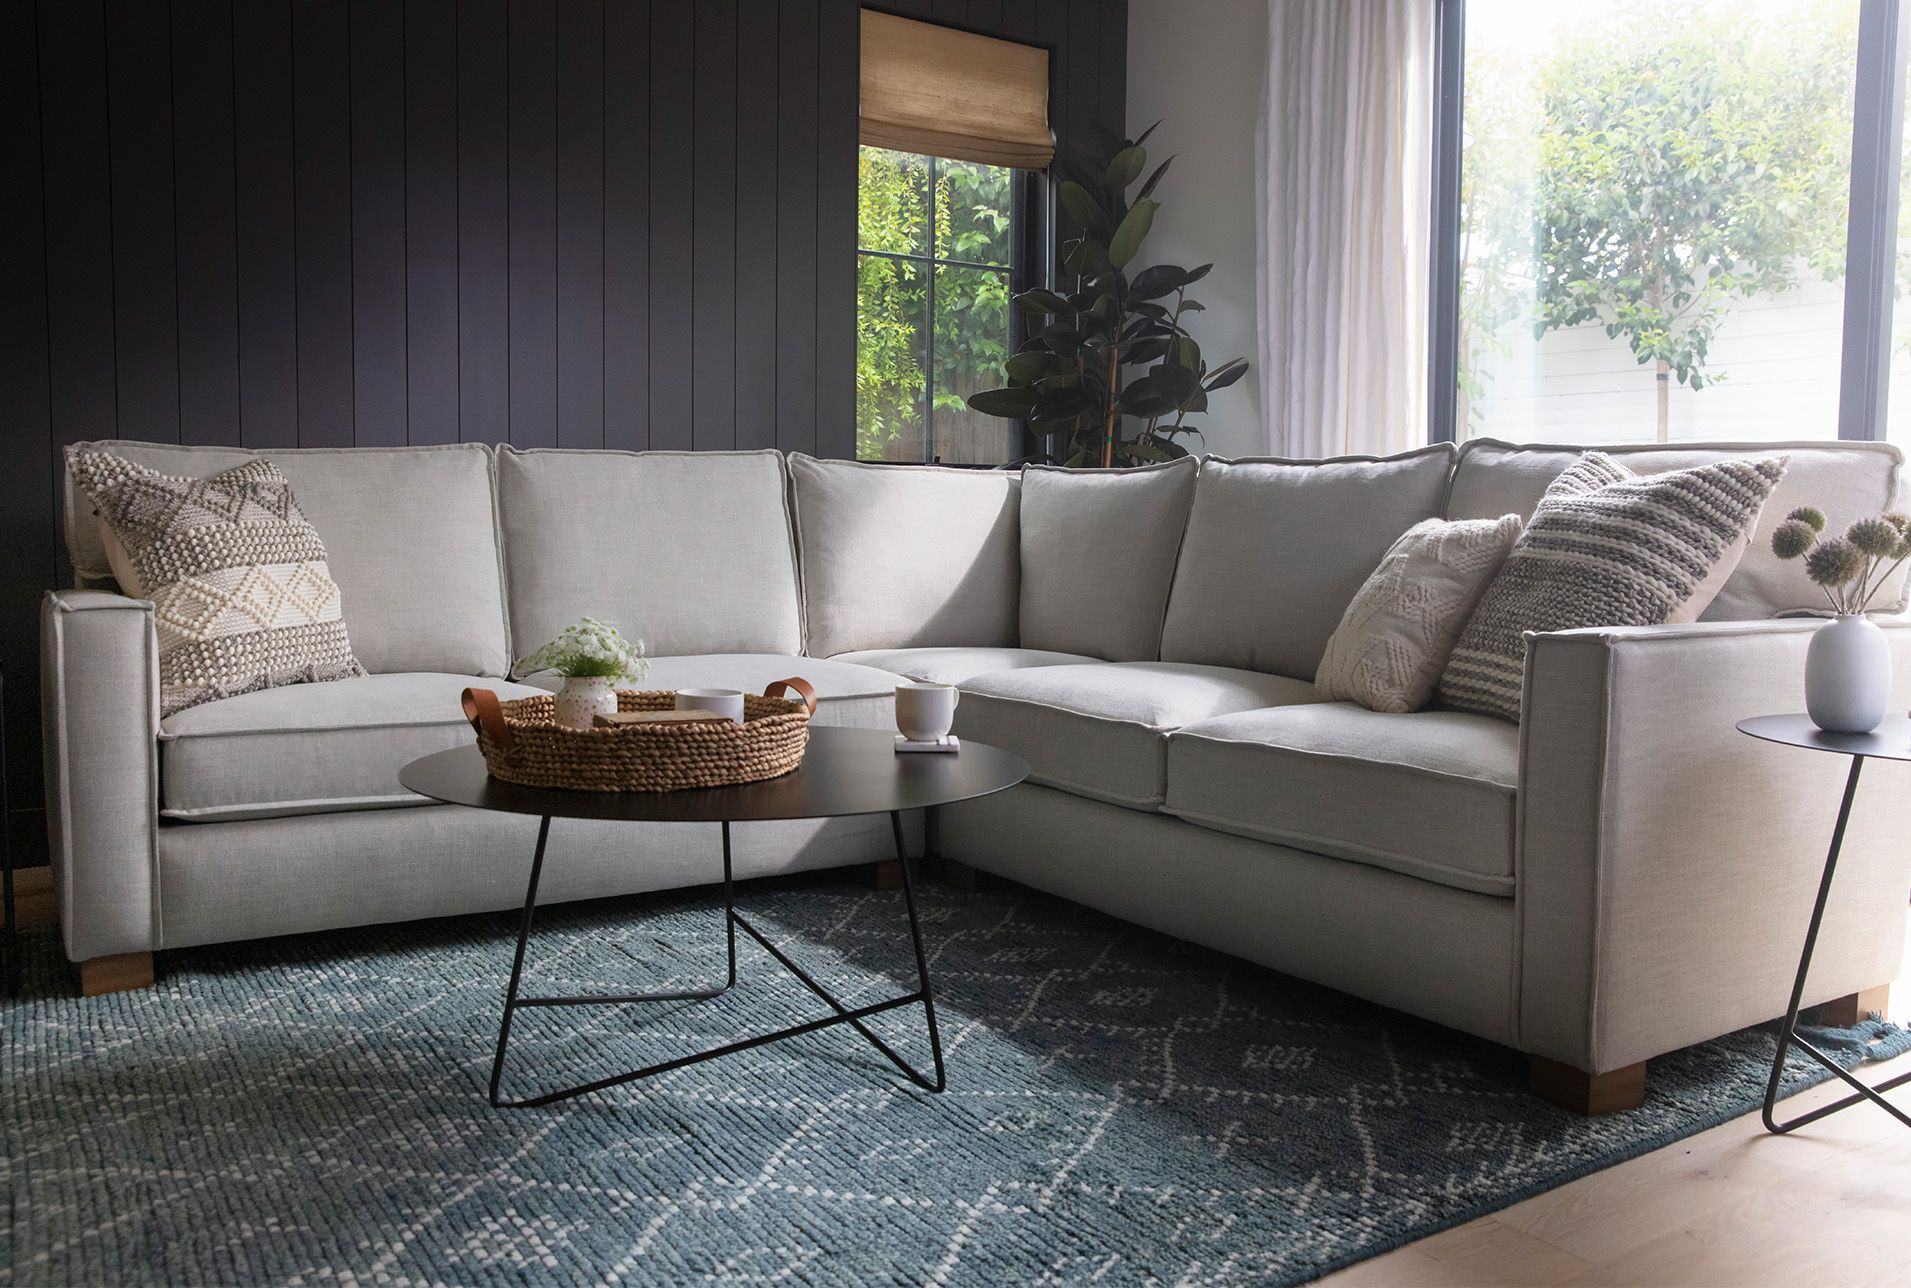 Accent Pillow Magnolia Home Knotted Stripes Grey 22x22 By Joanna Gaines Magnolia Homes Sectional Sofa Magnolia Home Decor [ 1288 x 1911 Pixel ]